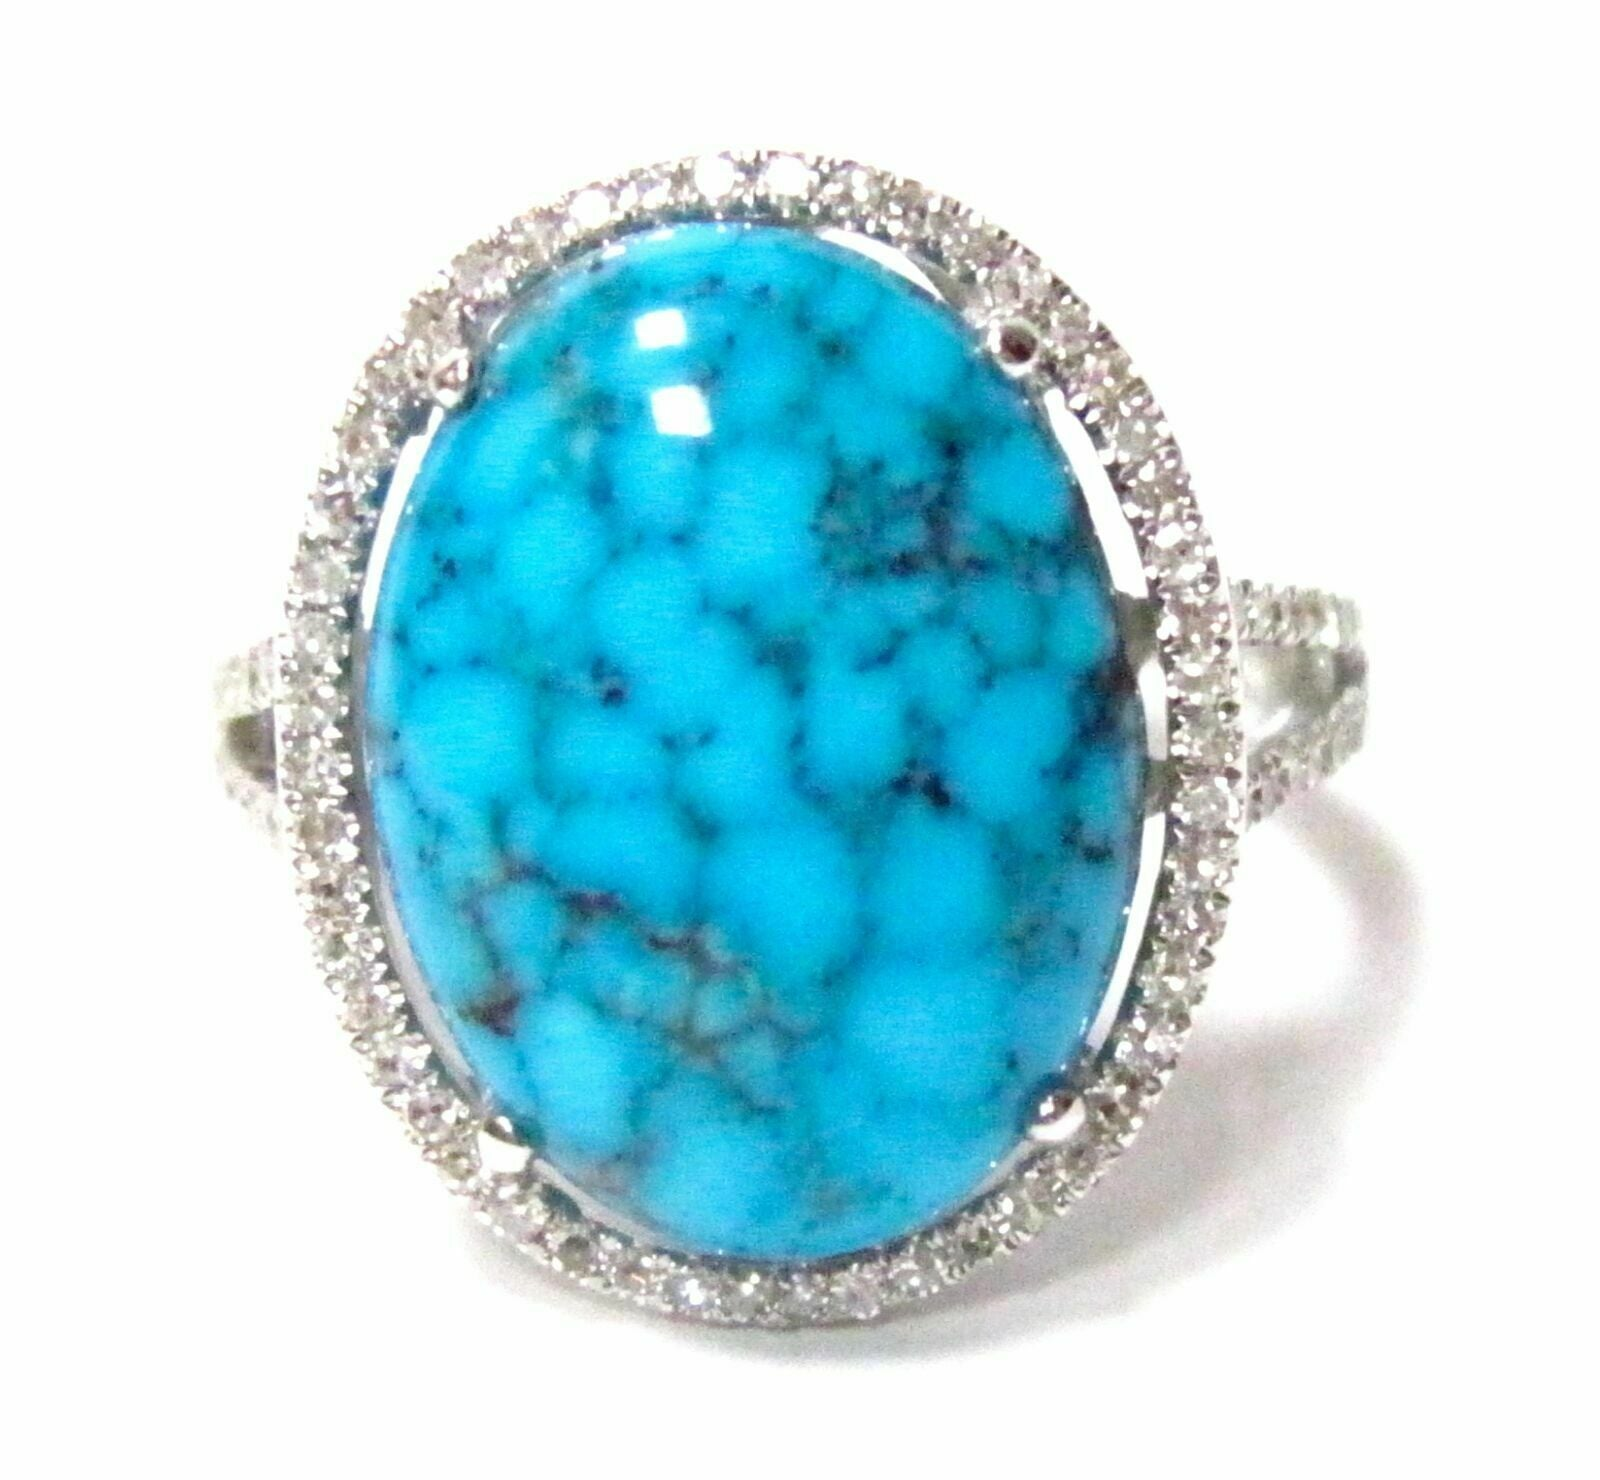 5.61 TCW Natural Oval Blue Turquoise w/ Diamond Accents Solitaire Ring Size 6.5